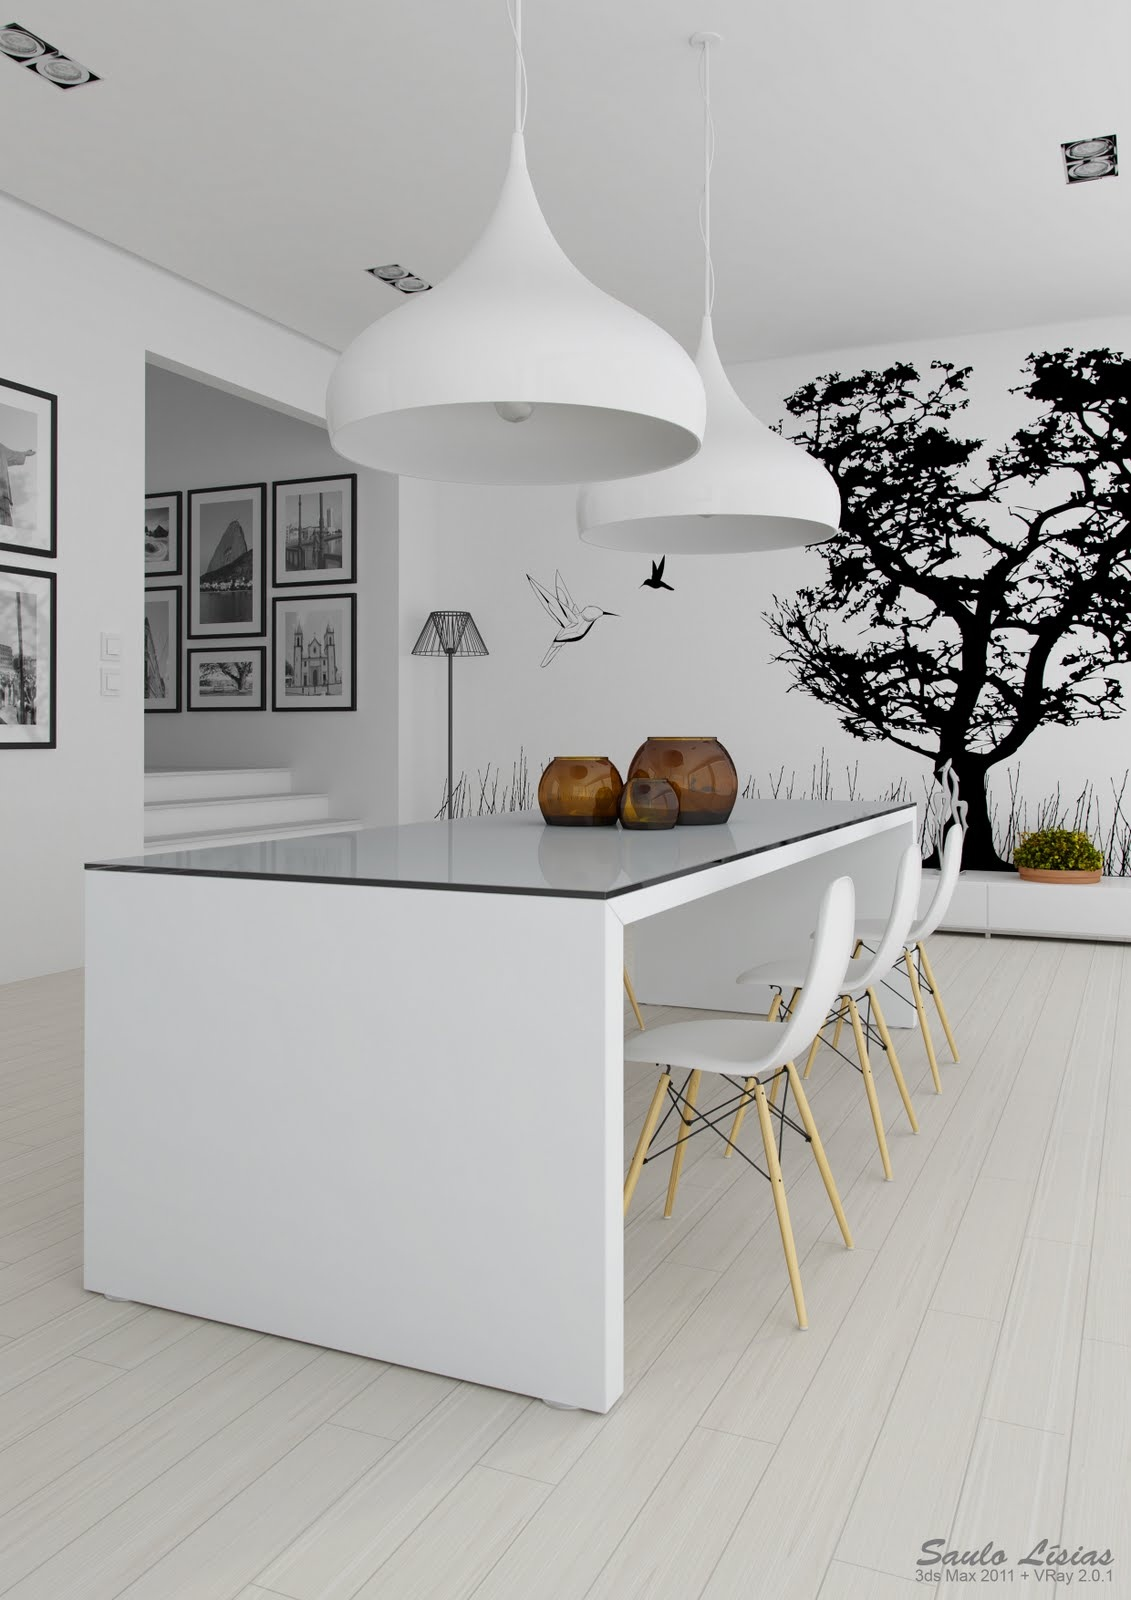 Black and White Kitchen Interior photo - 3